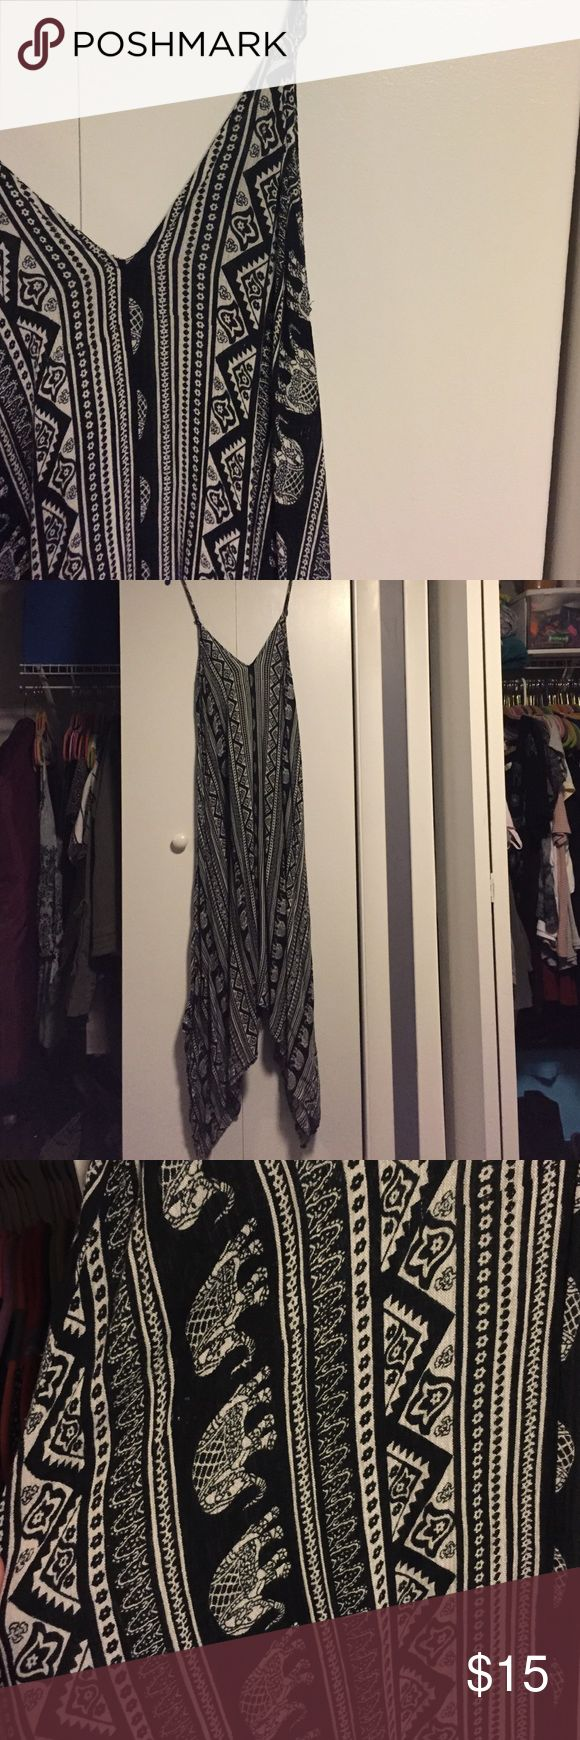 Aztec maxi dress Worn once, in great gently used condition. NO TRADES Rue 21 Dresses Maxi